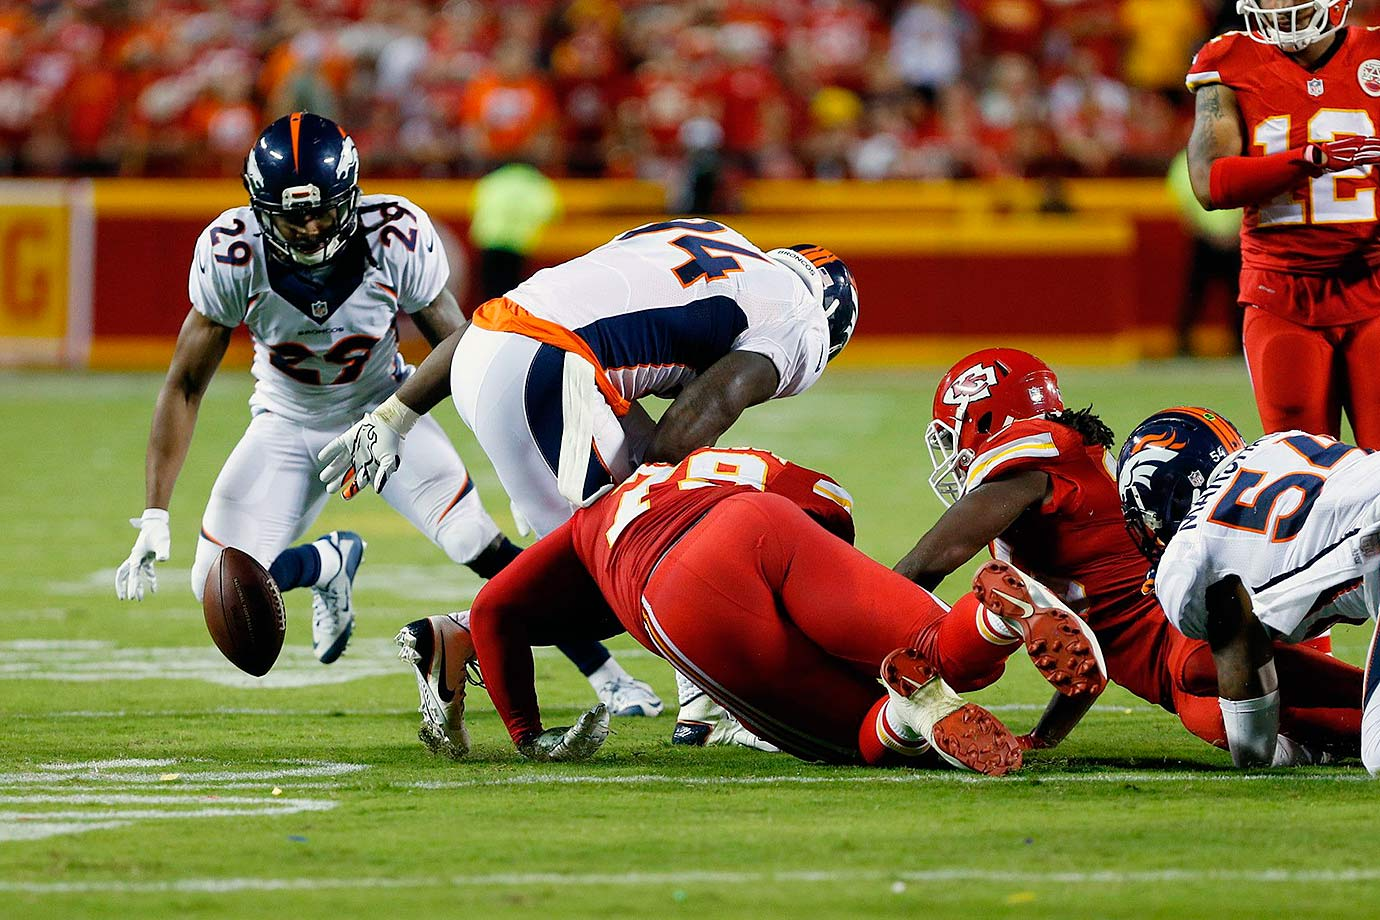 The fBroncos fell in a 14-0 first half deficit to the Kansas City Chiefs following another pick-six throw by Peyton Manning. But he rebounded to throw for 256 yards and three touchdowns. With the game tied and 27 seconds left, Chiefs running back Jamaal Charles was stripped and safety Bradley Roby returned the fumble for a touchdown. Denver won 31-24.